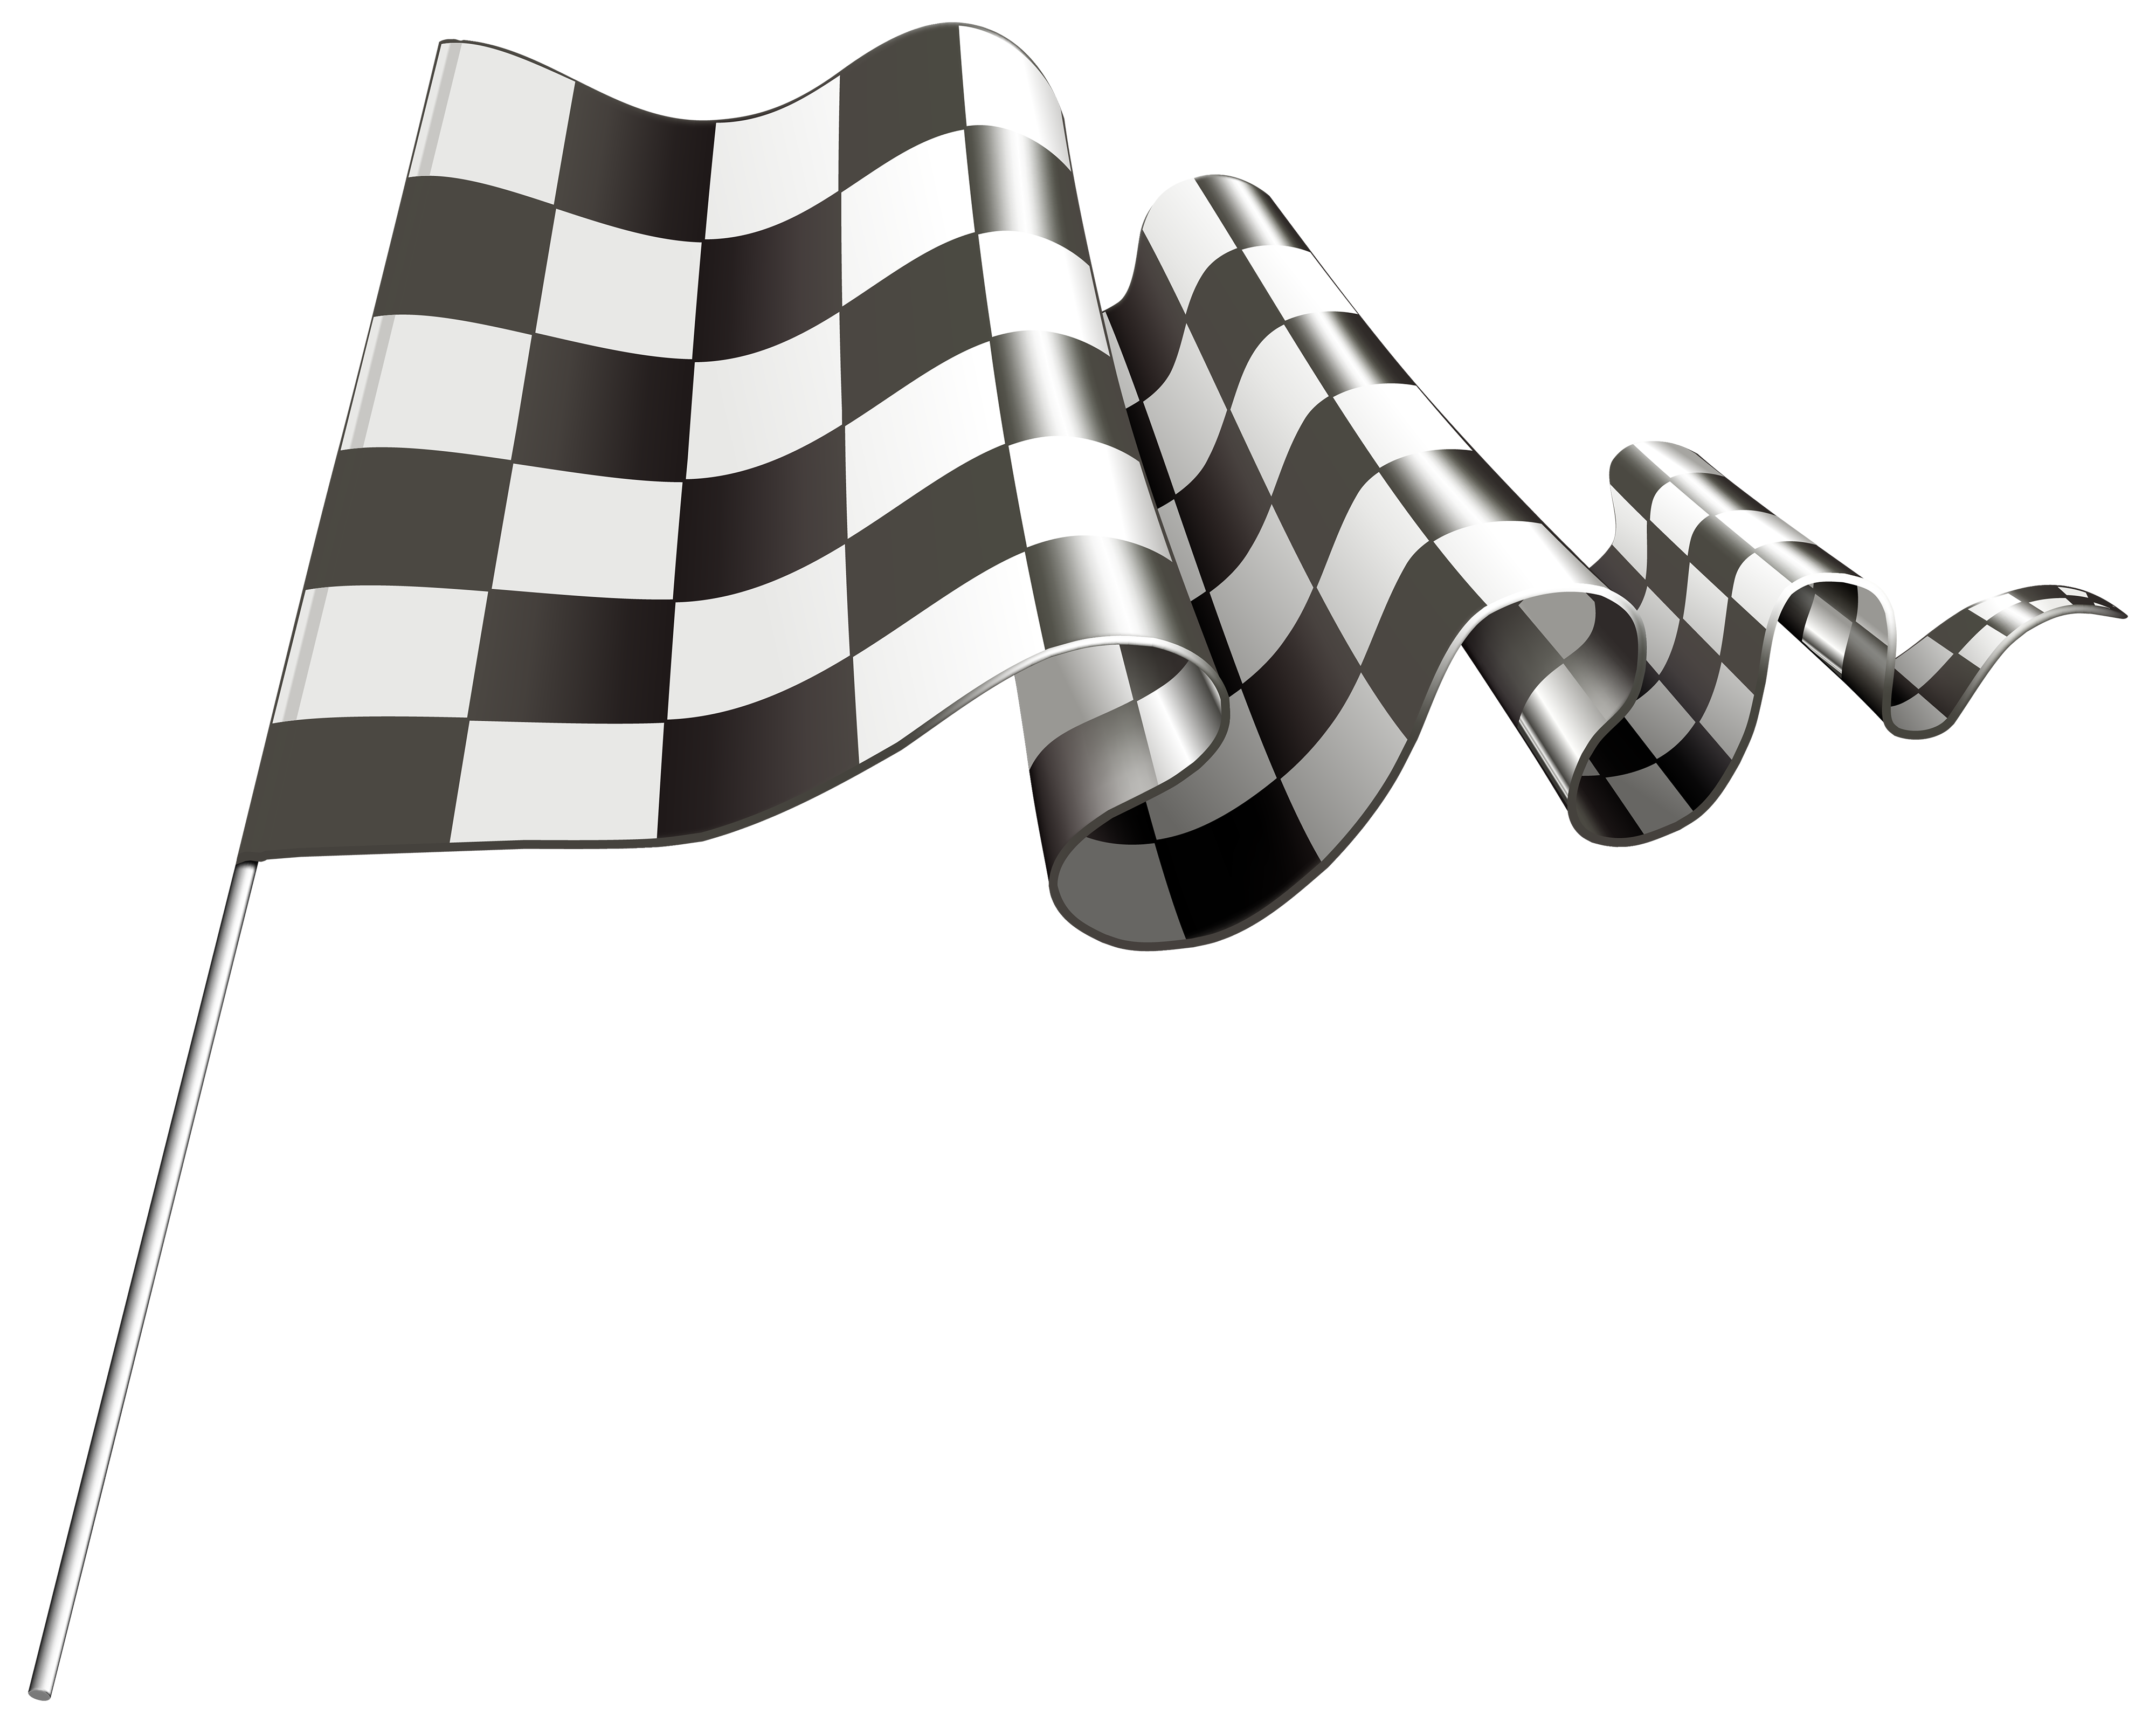 Flags clipart sport. Checkered flag png best